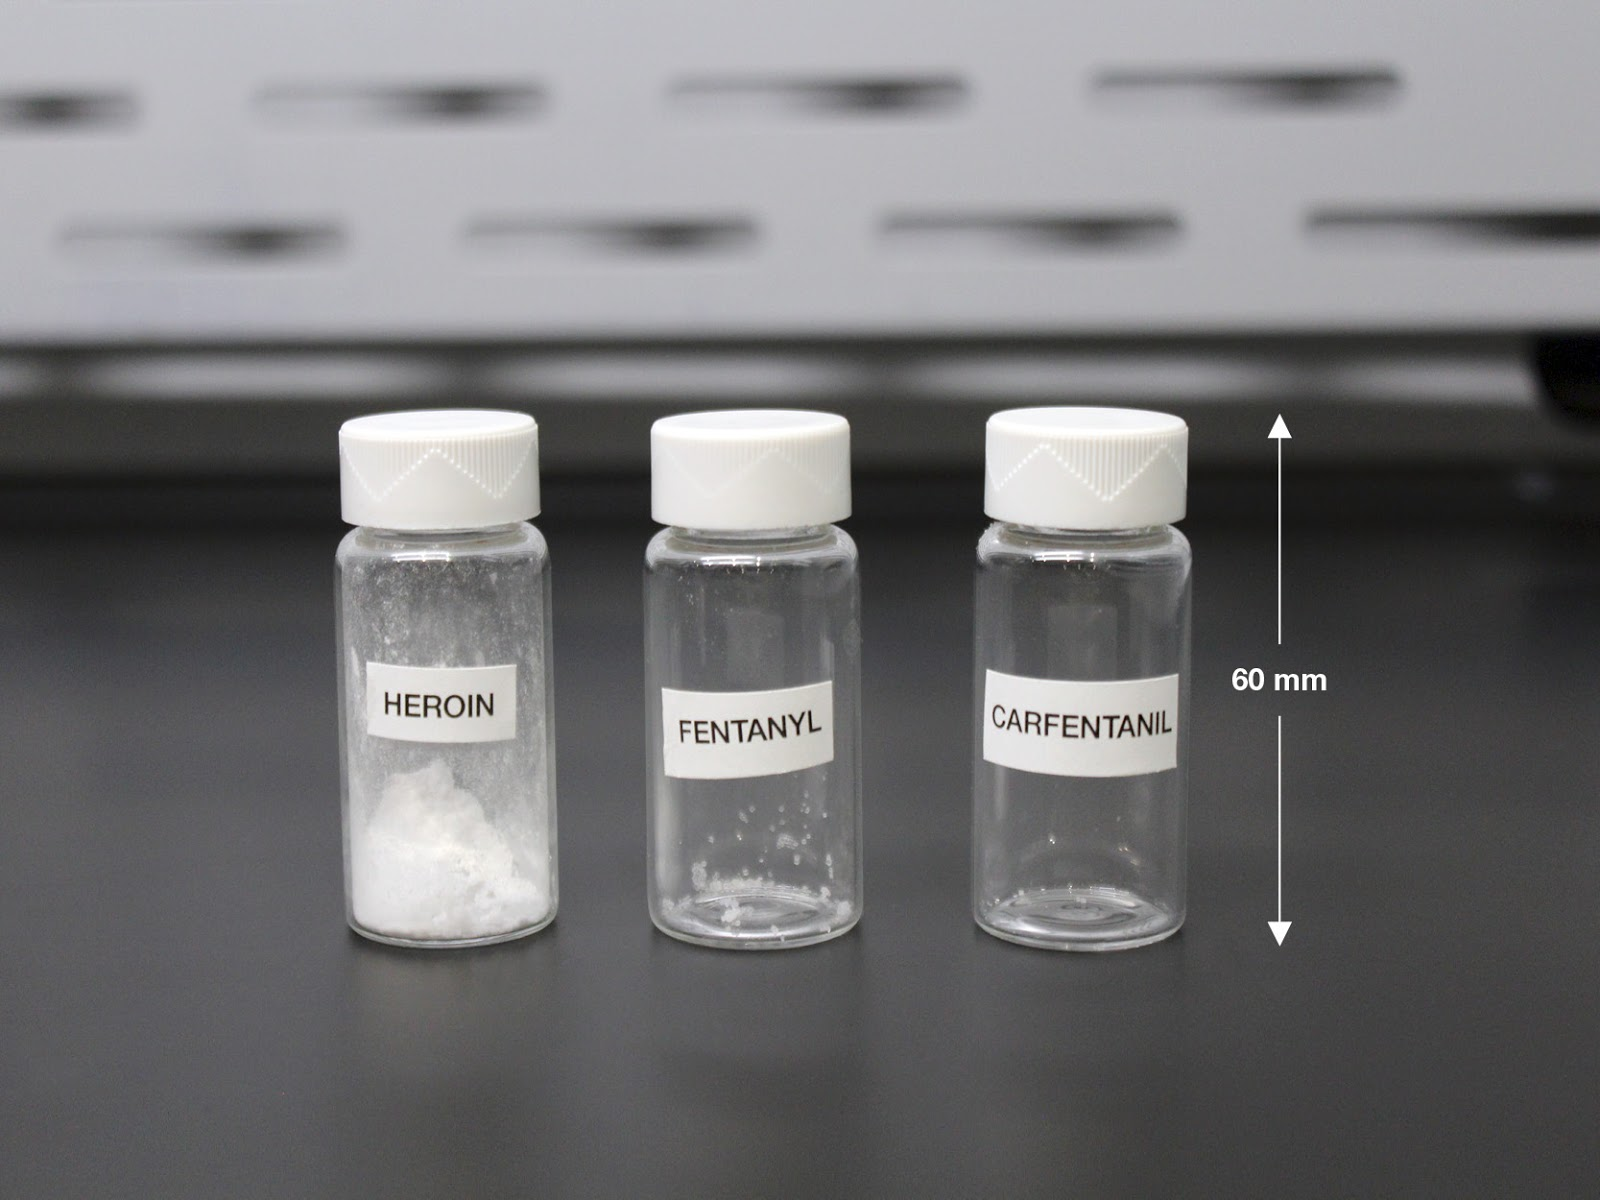 You can overdose just by inhaling it. Here's how fentanyl is killing more than heroin - Muddlex